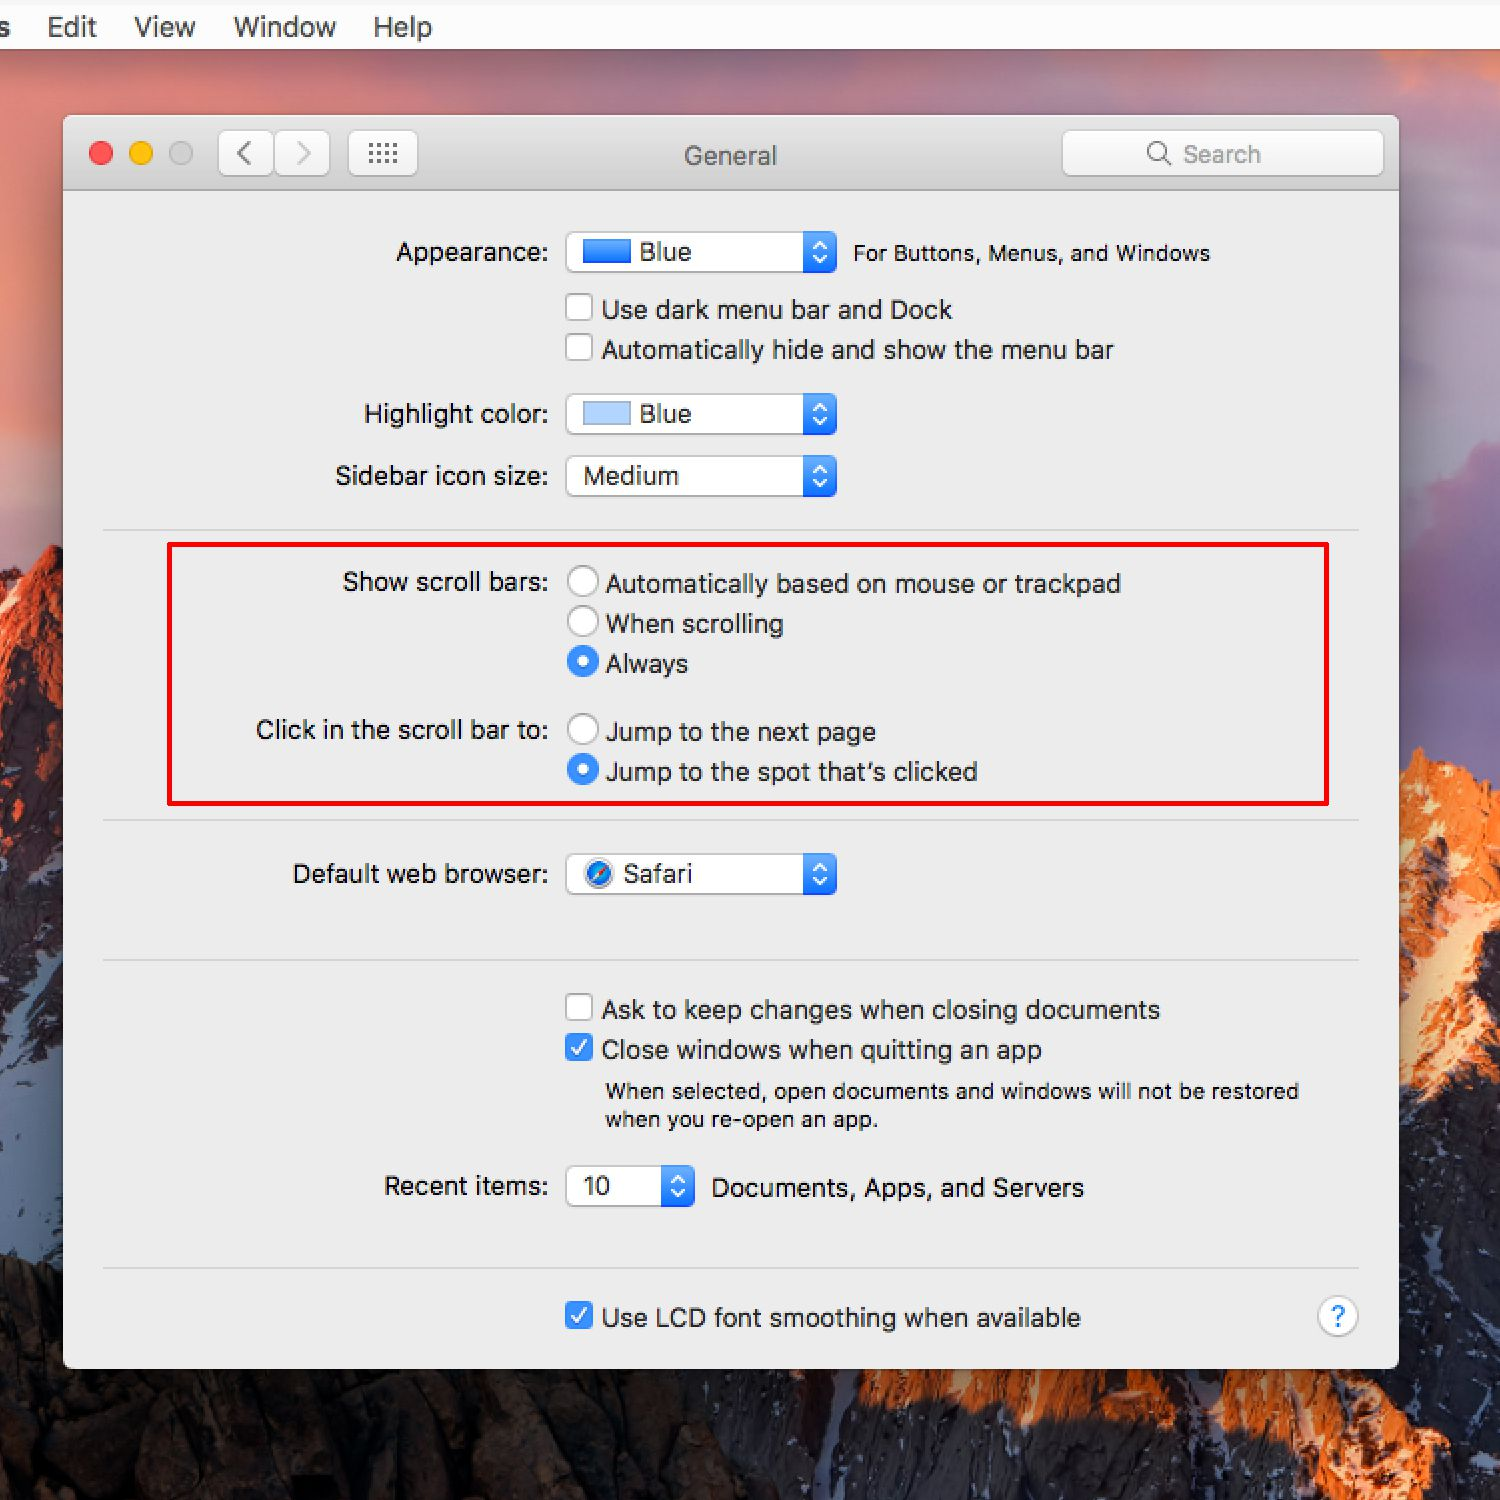 How to Make Scrolling on Your Mac Work for You